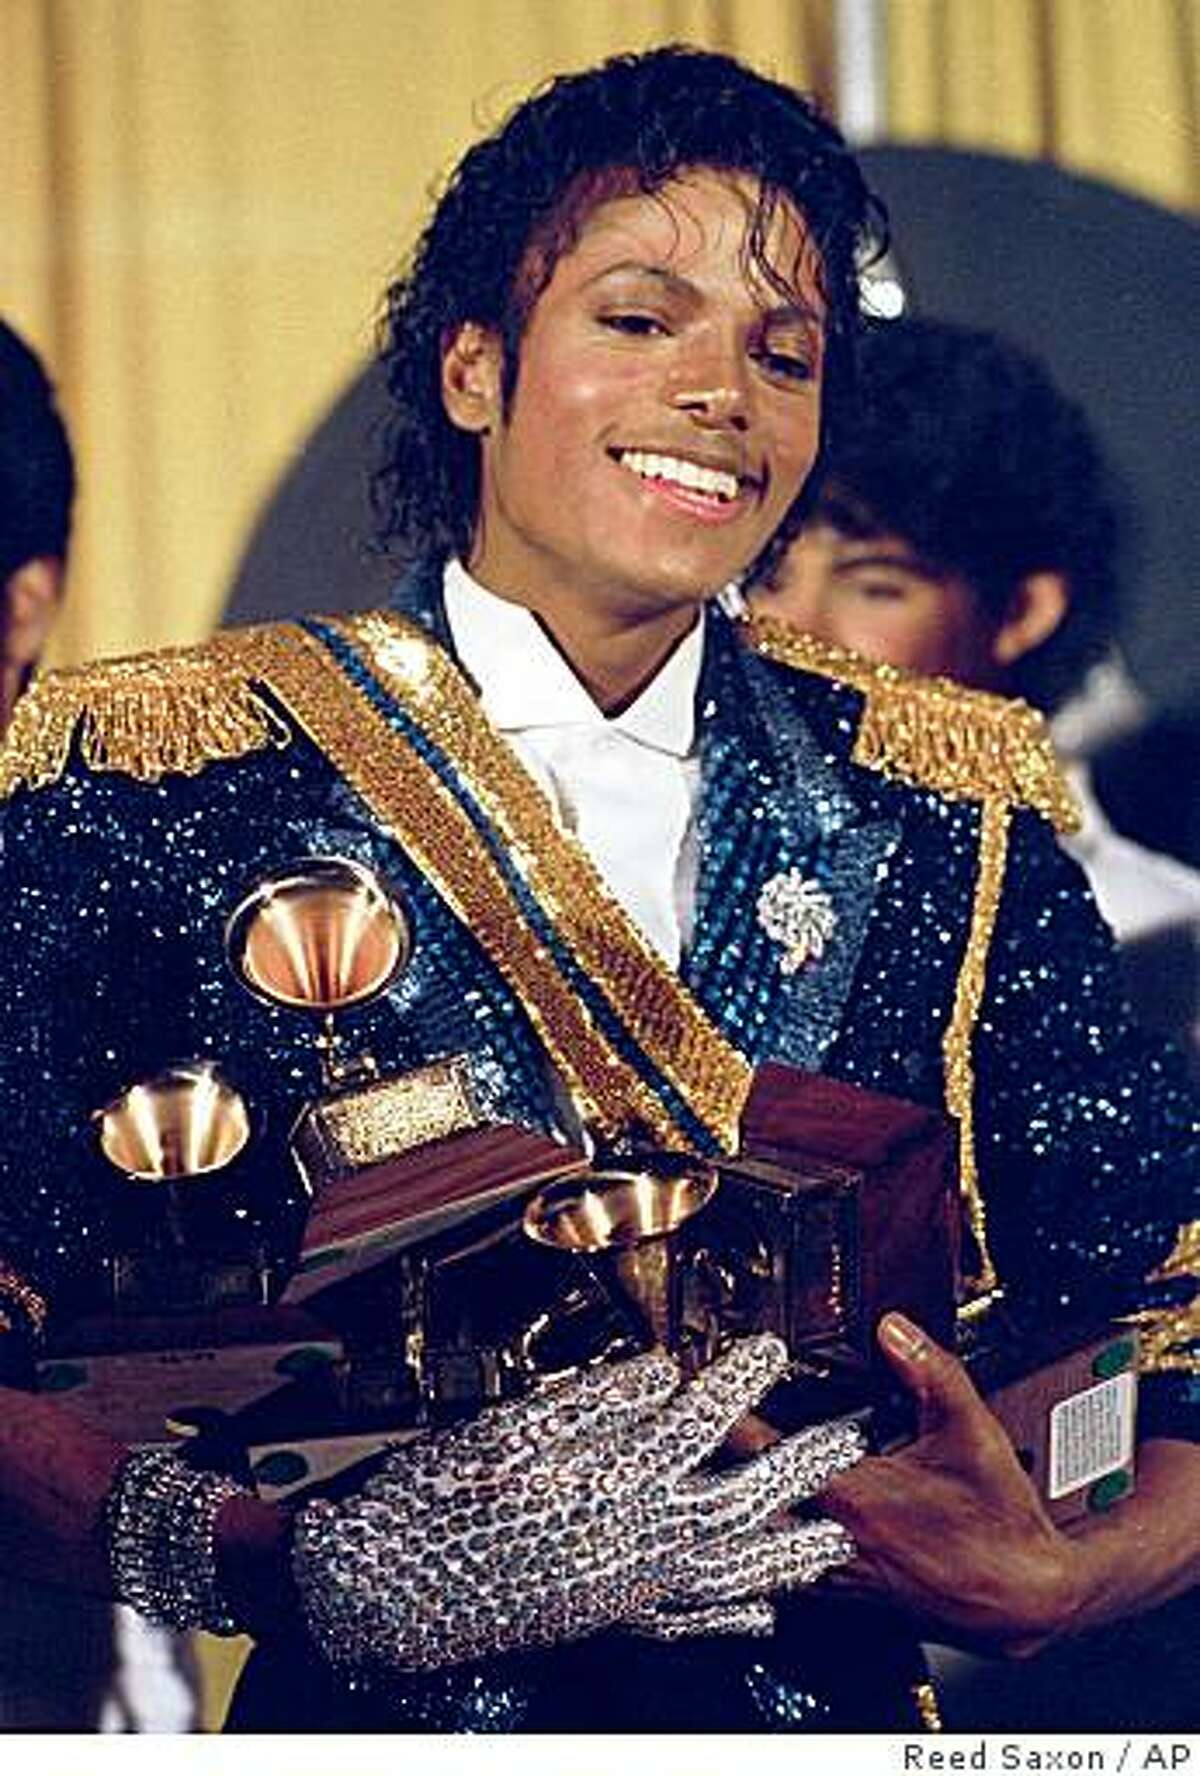 Michael Jackson is seen backstage at the 26th annual Grammy Awards in Los Angeles as he poses with the awards he won in eight different categories on February 28, 1984.